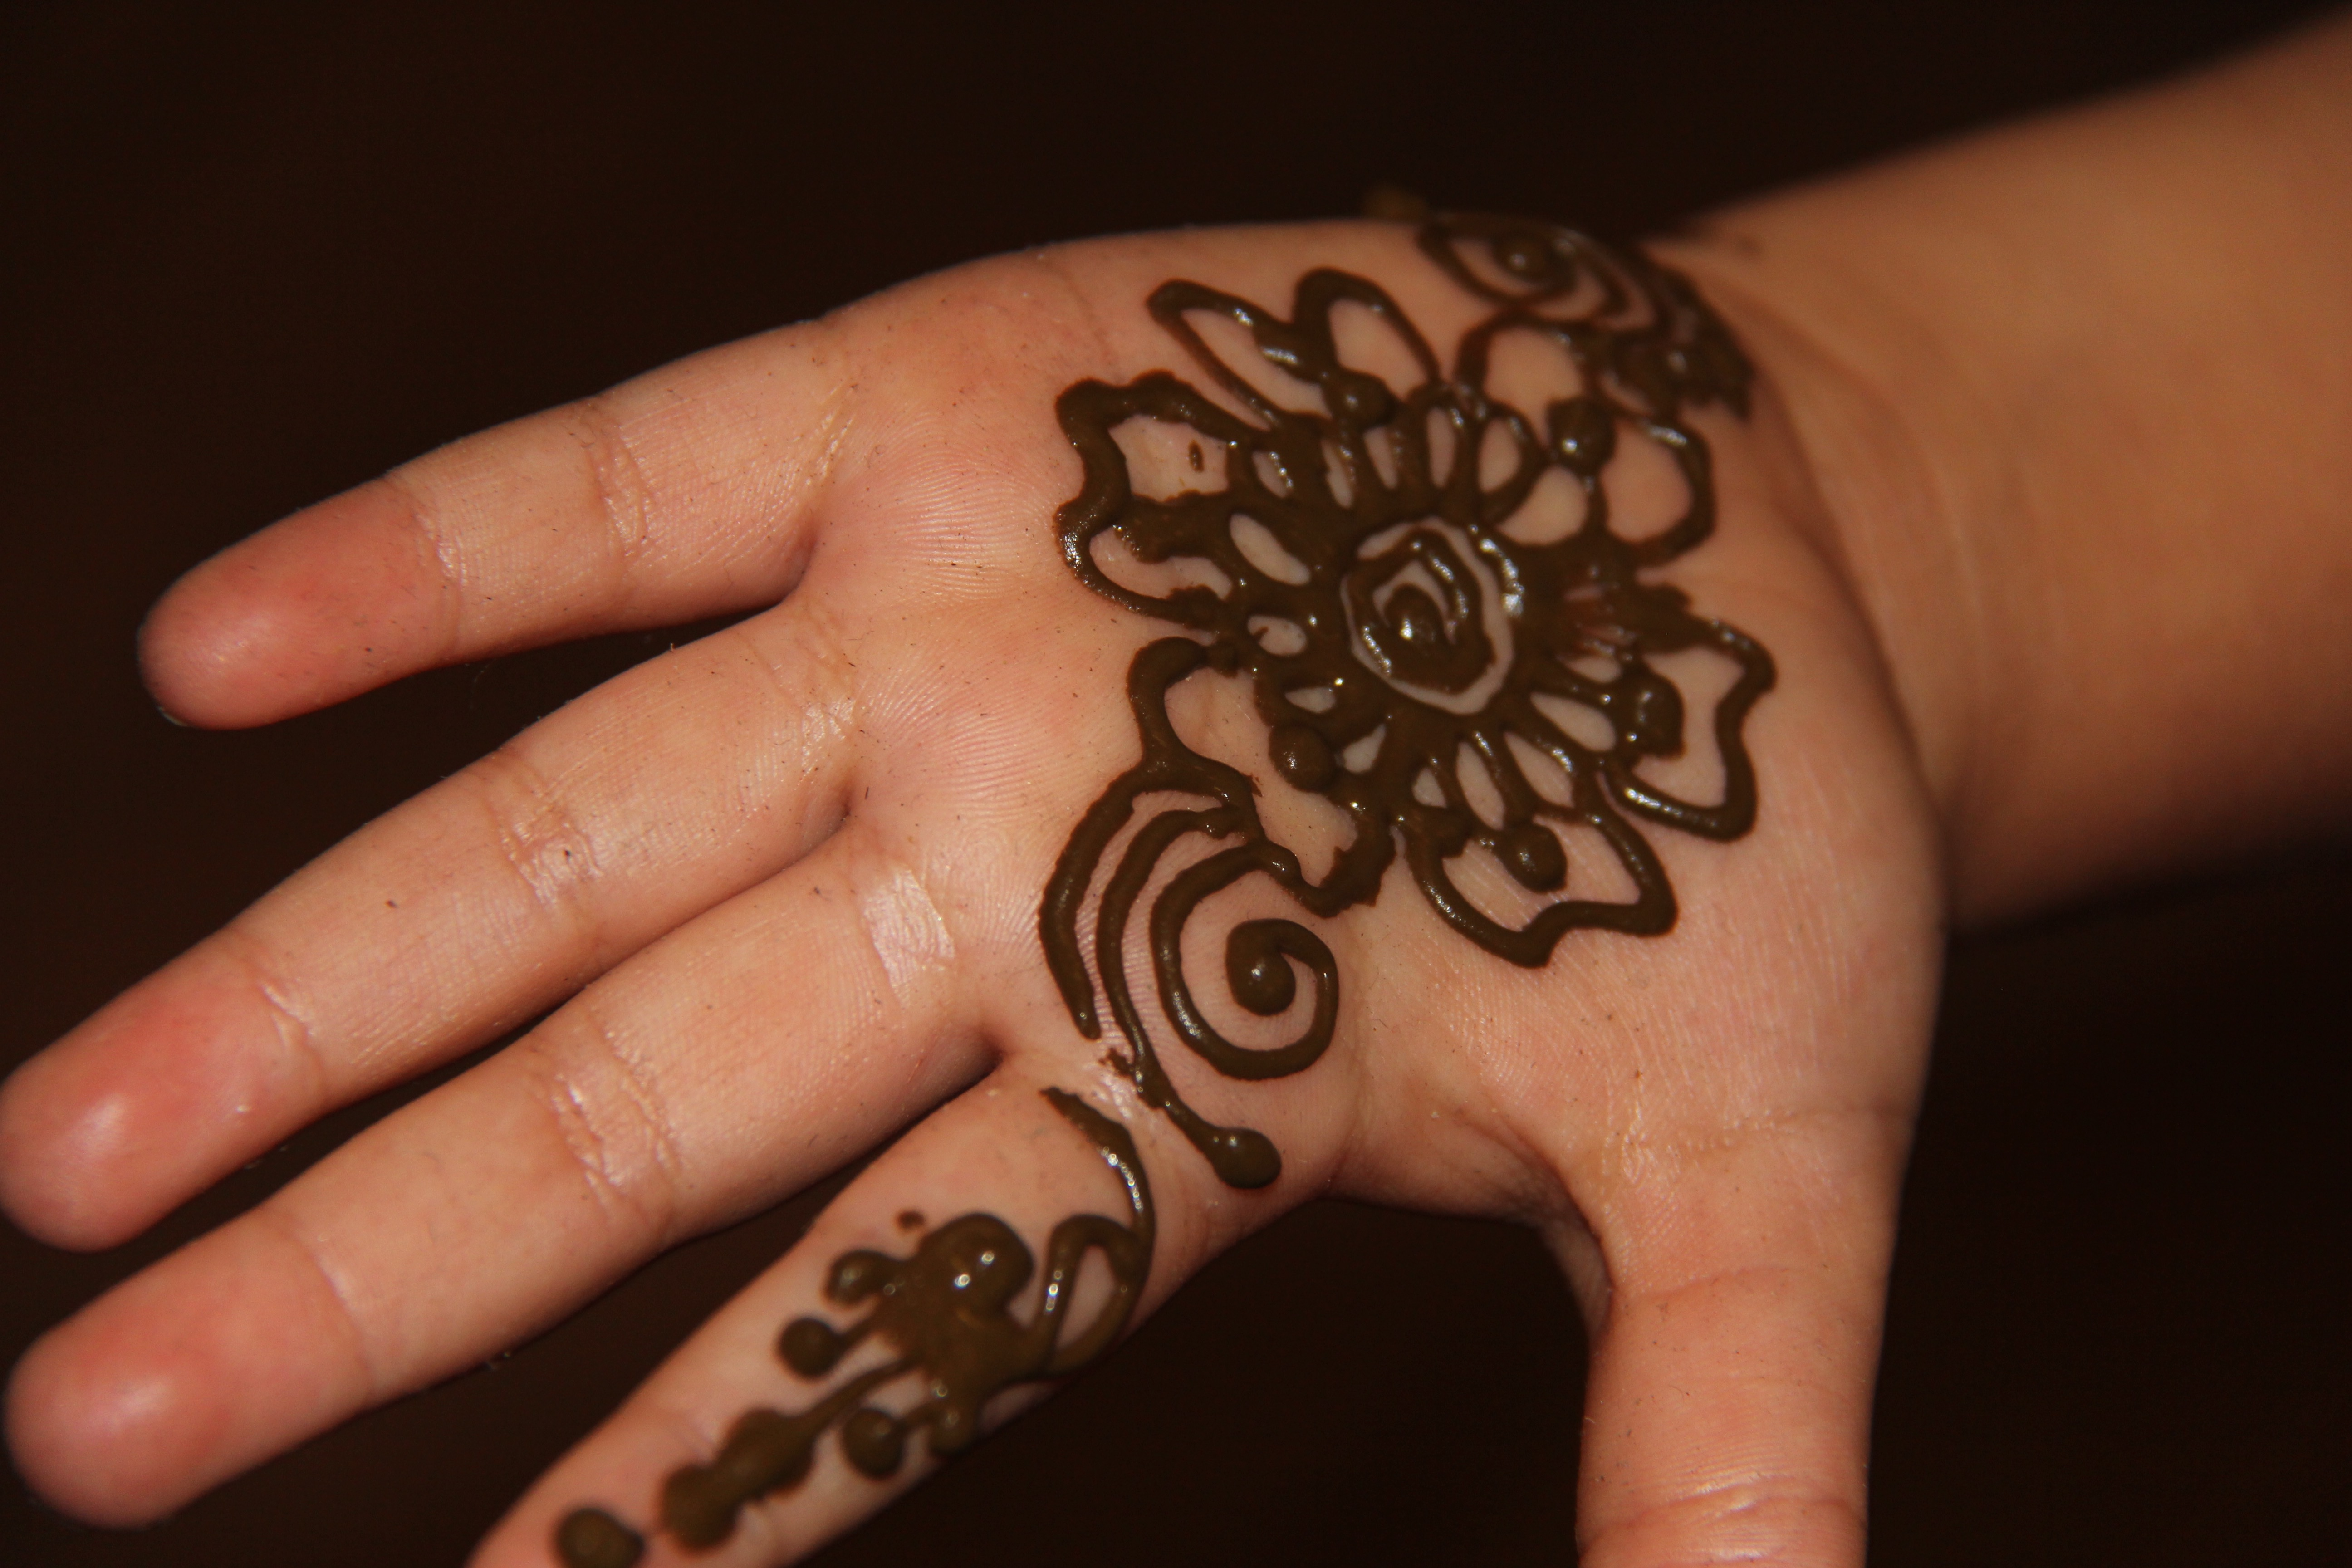 A hand covered in henna patterns